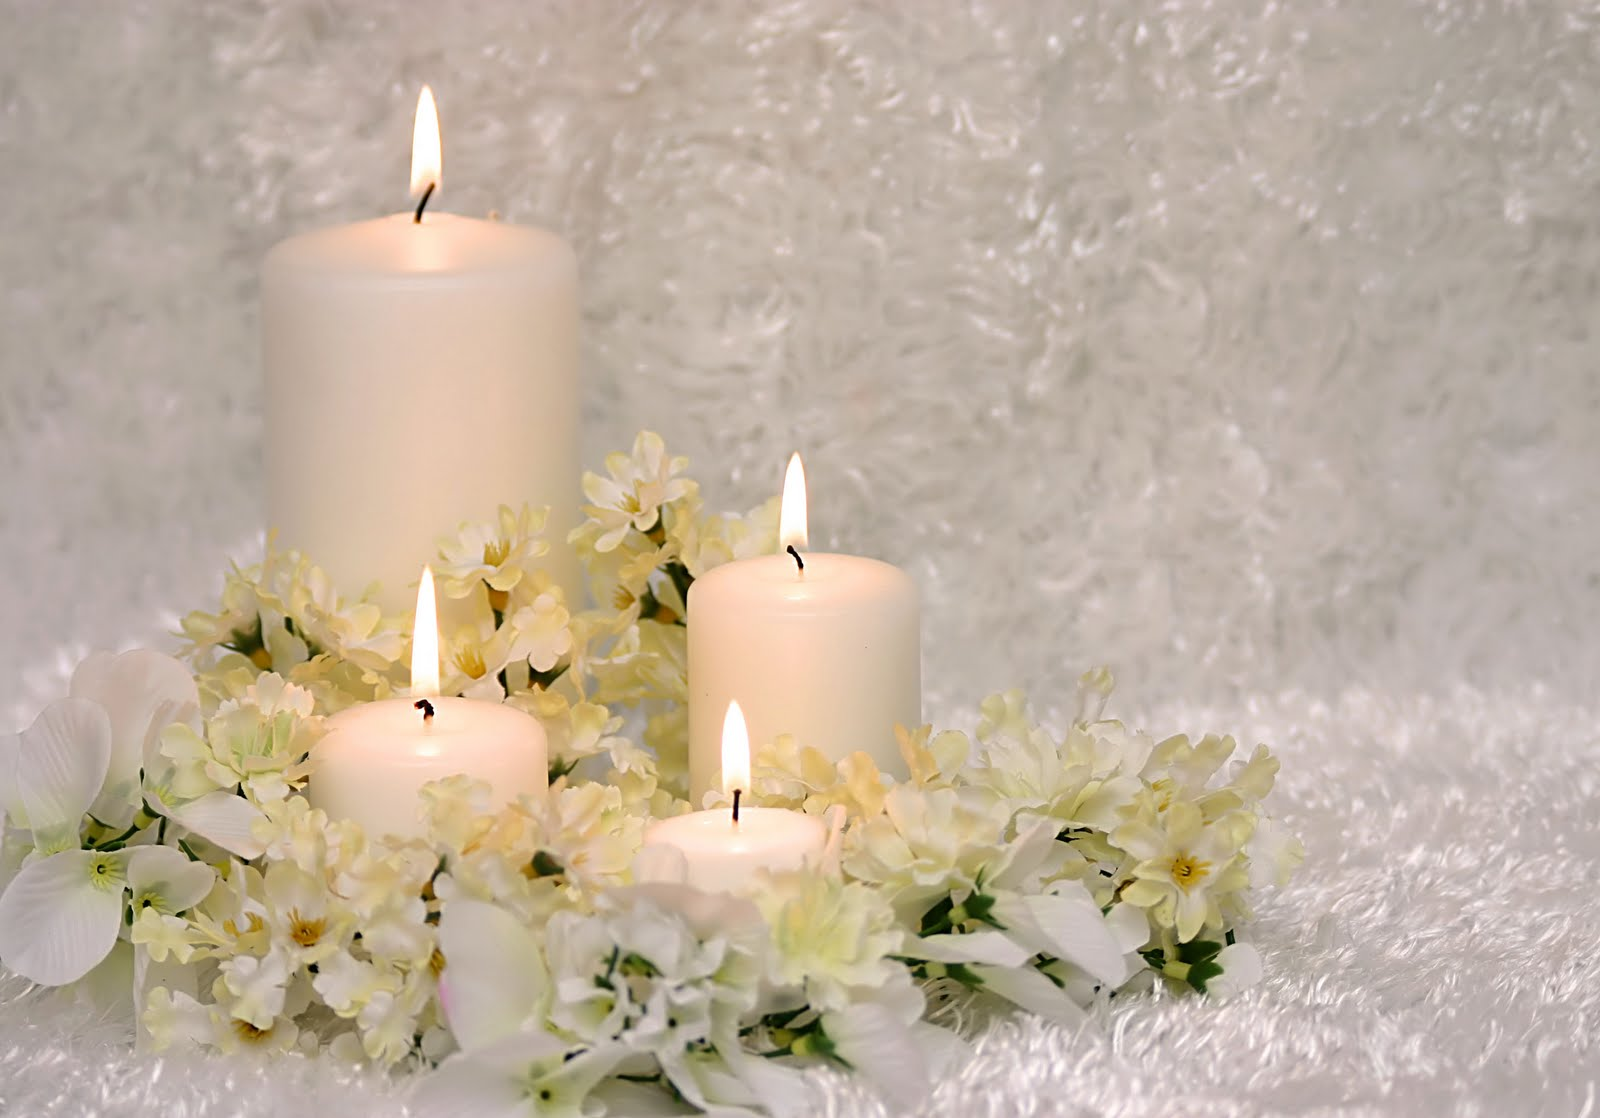 A White Candle Spell For New Love